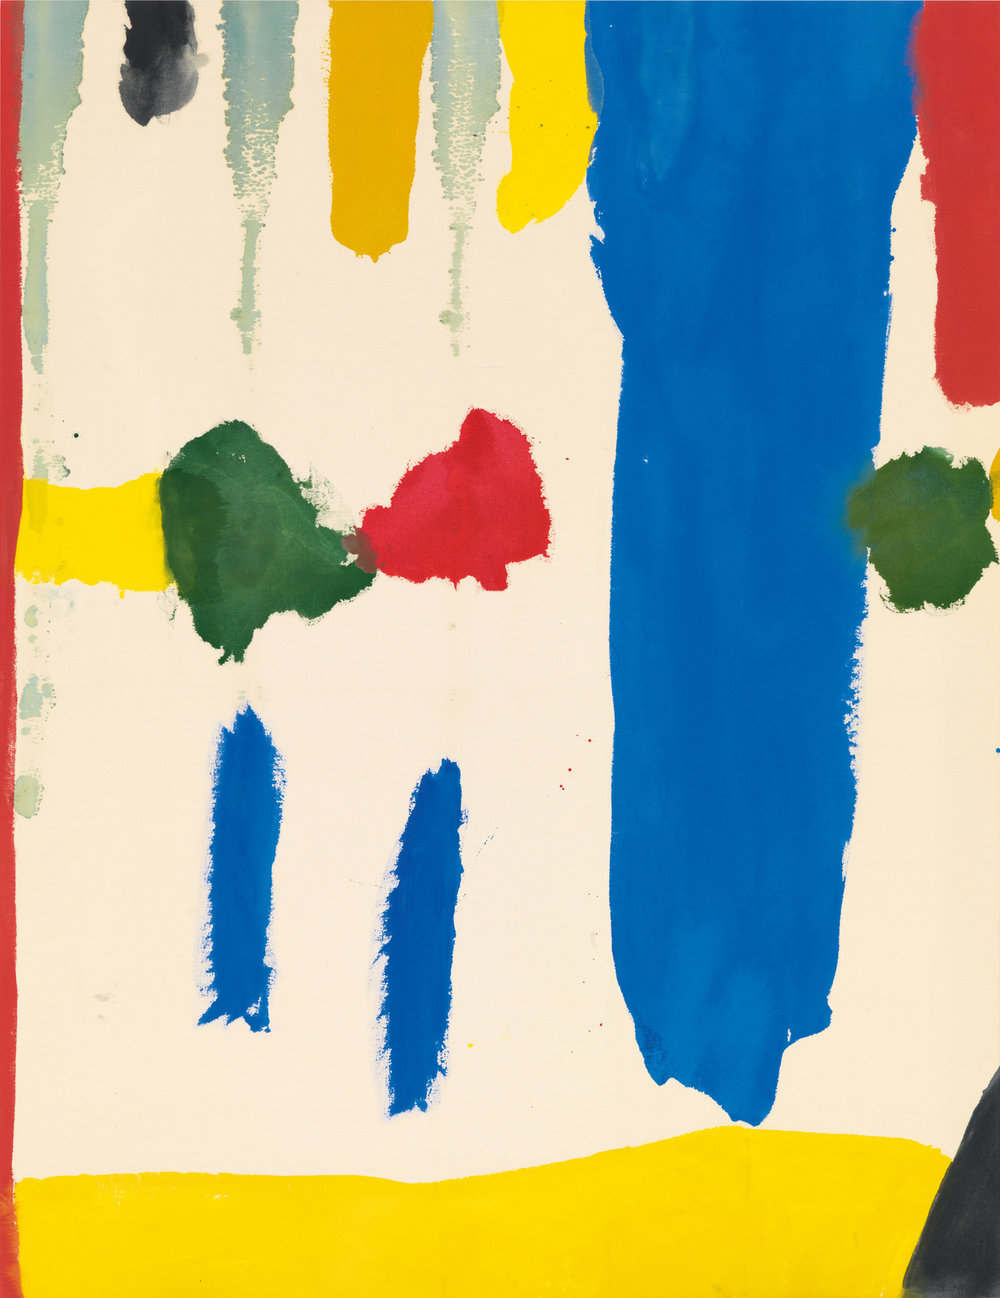 Helen Frankenthaler,  Parade , 1965, Acrylic on canvas, 73 × 56 1/2 inches (185.4 × 143.5 cm), © 2016 Helen Frankenthaler Foundation, Inc./Artists Rights Society (ARS), New York. Photo by Rob McKeever